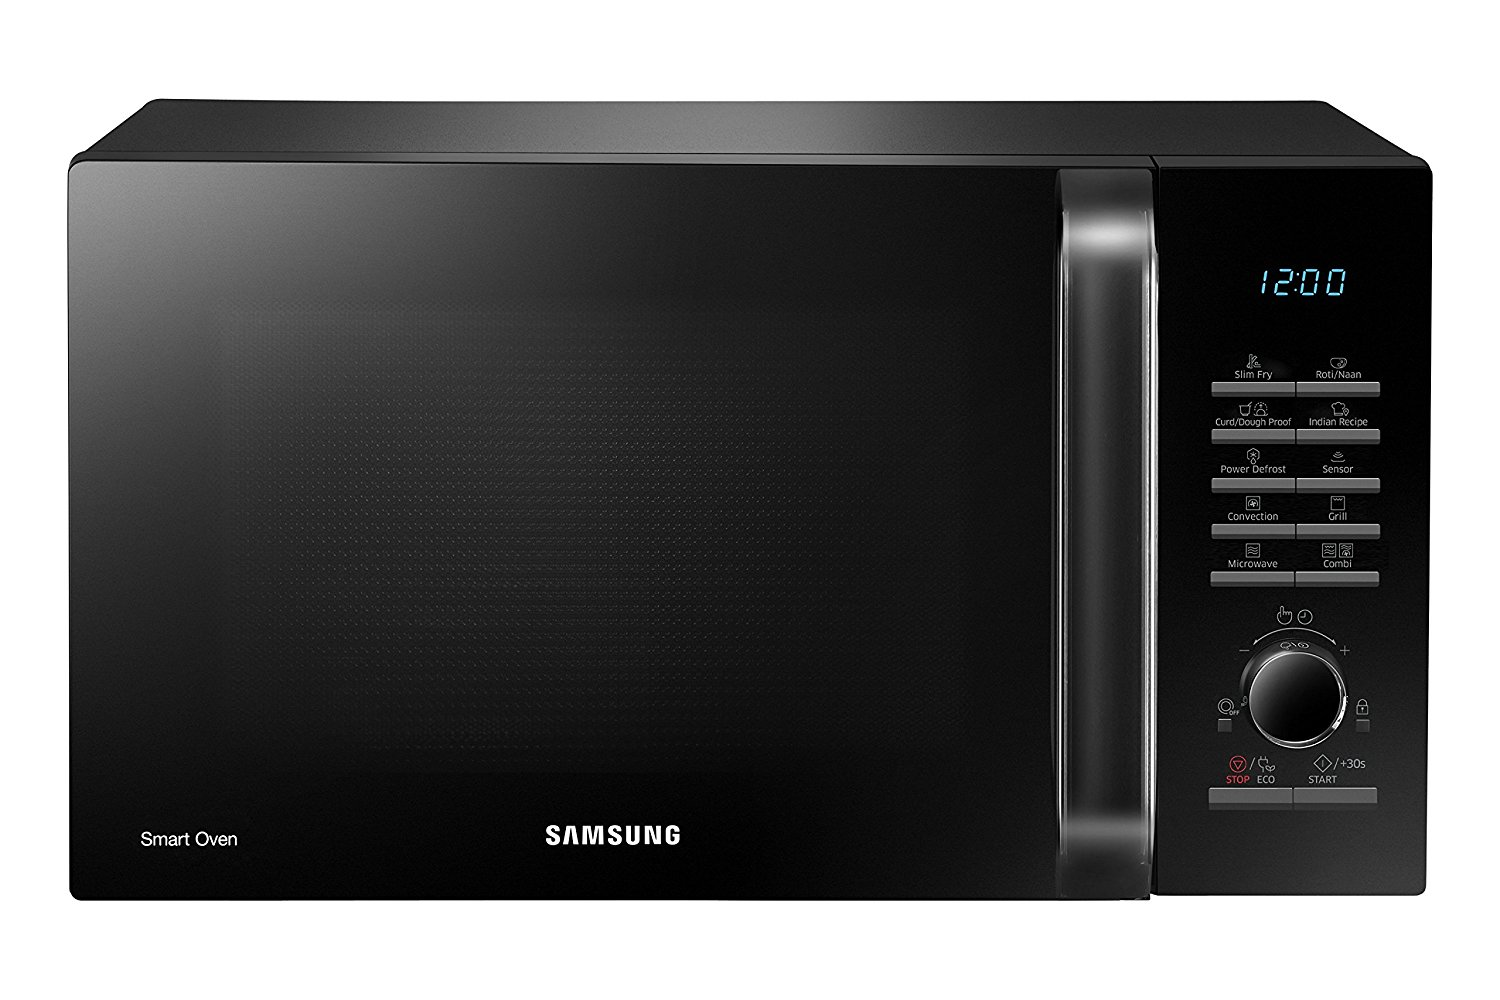 microwave oven from Samsung 28 liters